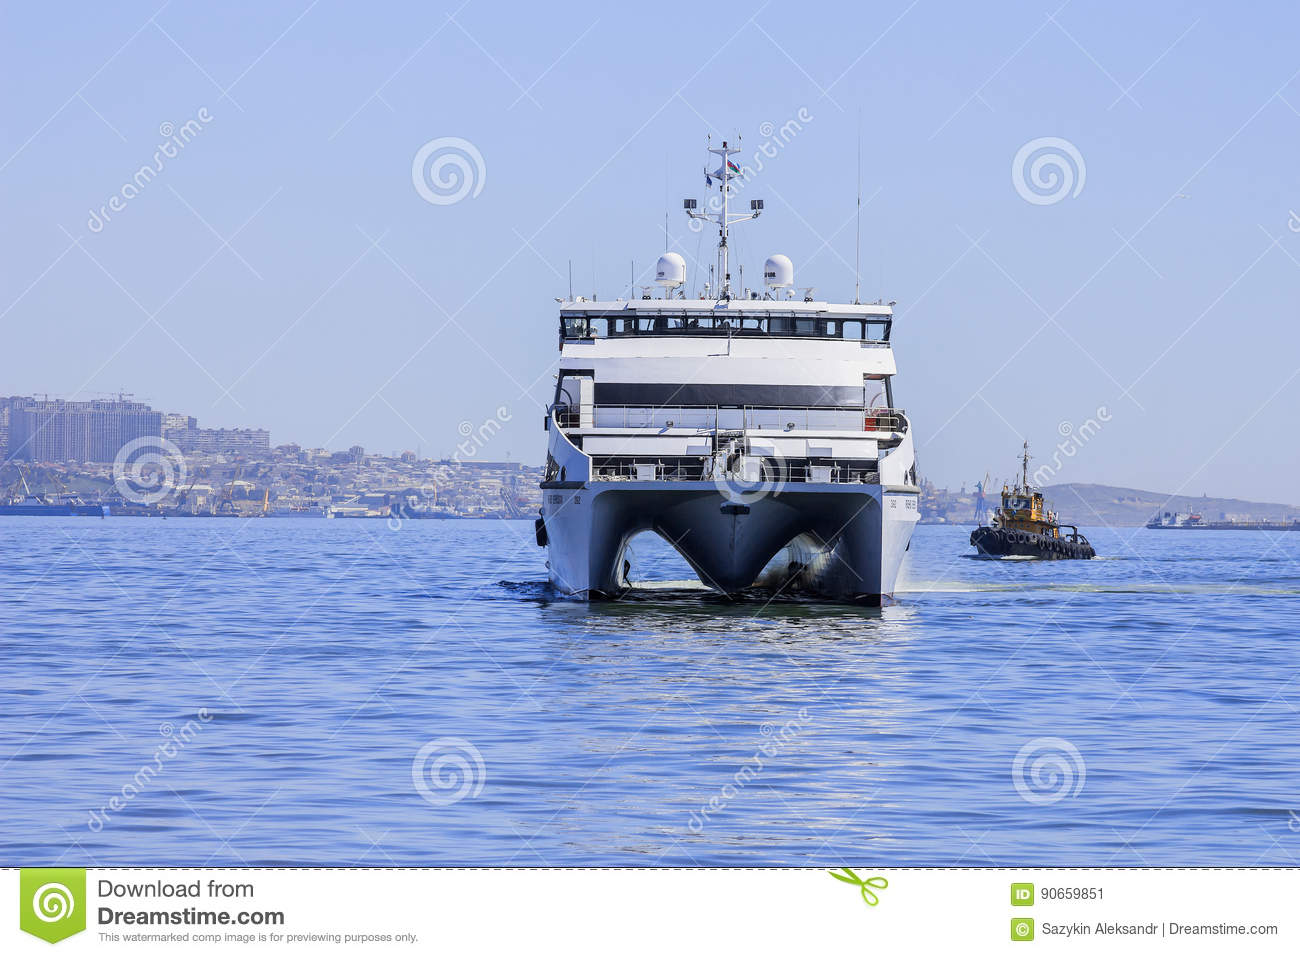 Exit from the port of Baku in the Caspian sea vessel `reshid Behbudov`, the Republic of Azerbaijan, March 29, 2017